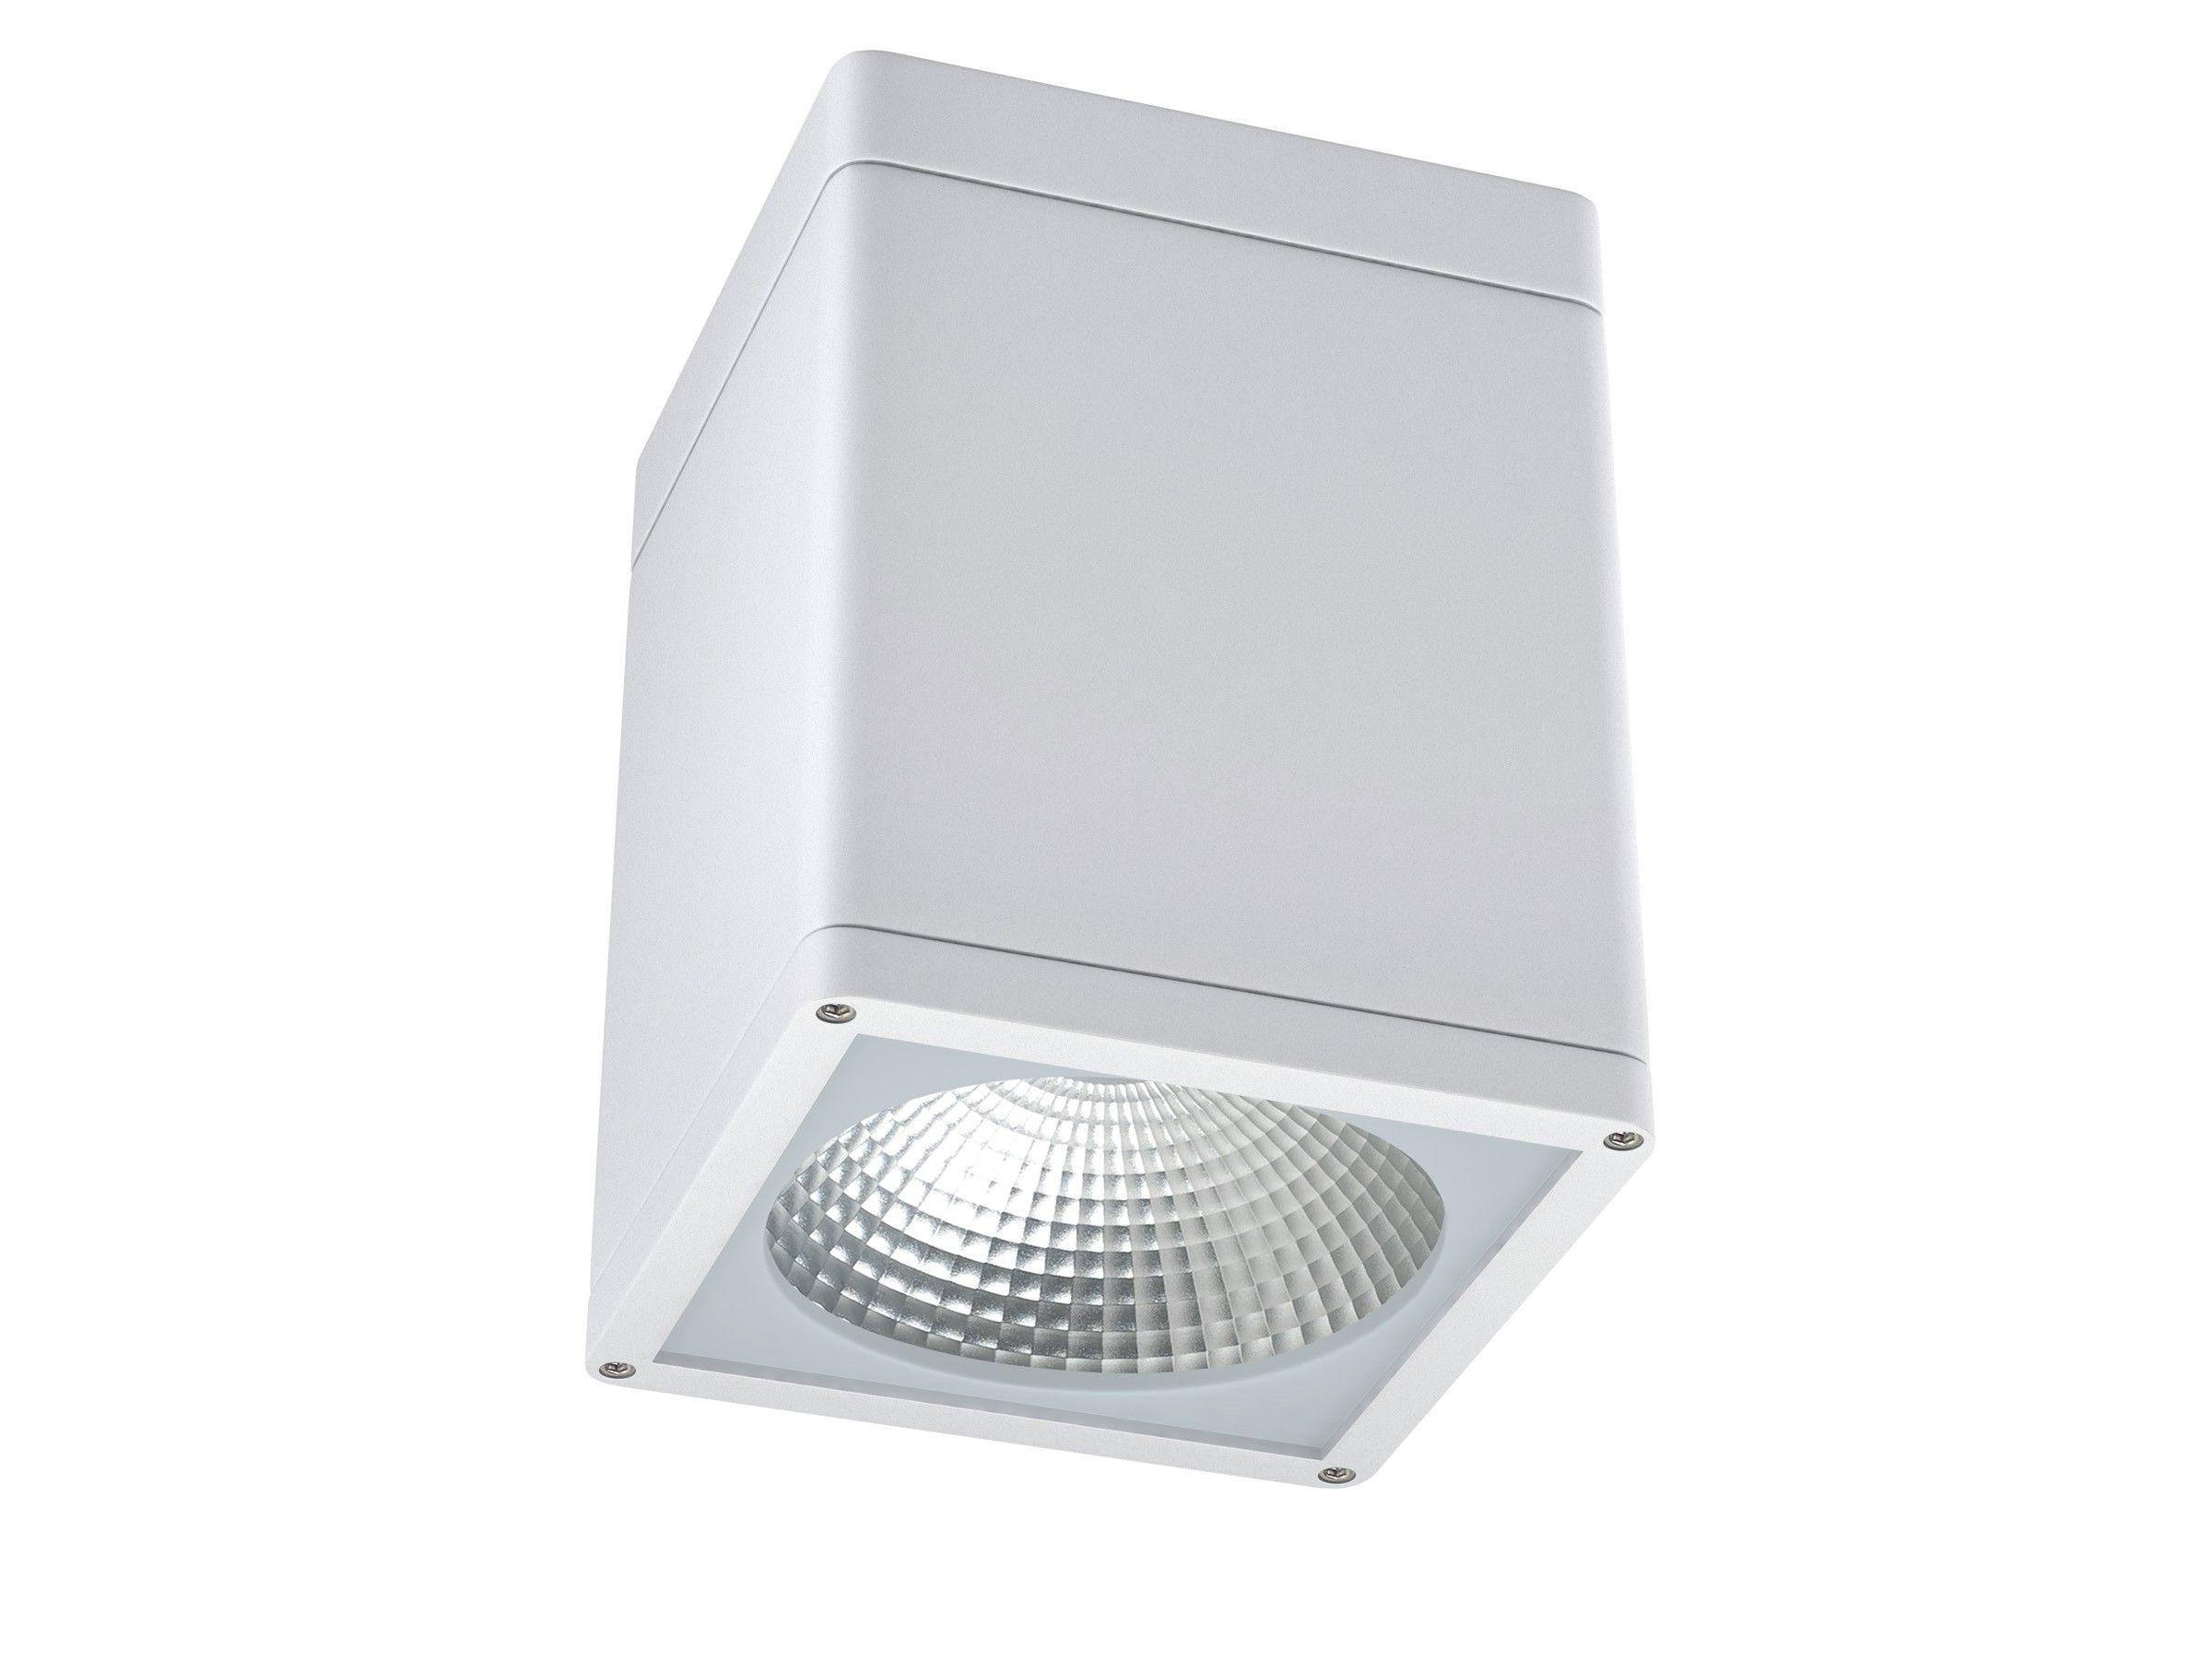 Alcon lighting 11223 dir pavo architectural led 4 inch square alcon lighting 11223 dir pavo architectural led 4 inch square surface ceiling mount direct down light fixture aloadofball Image collections